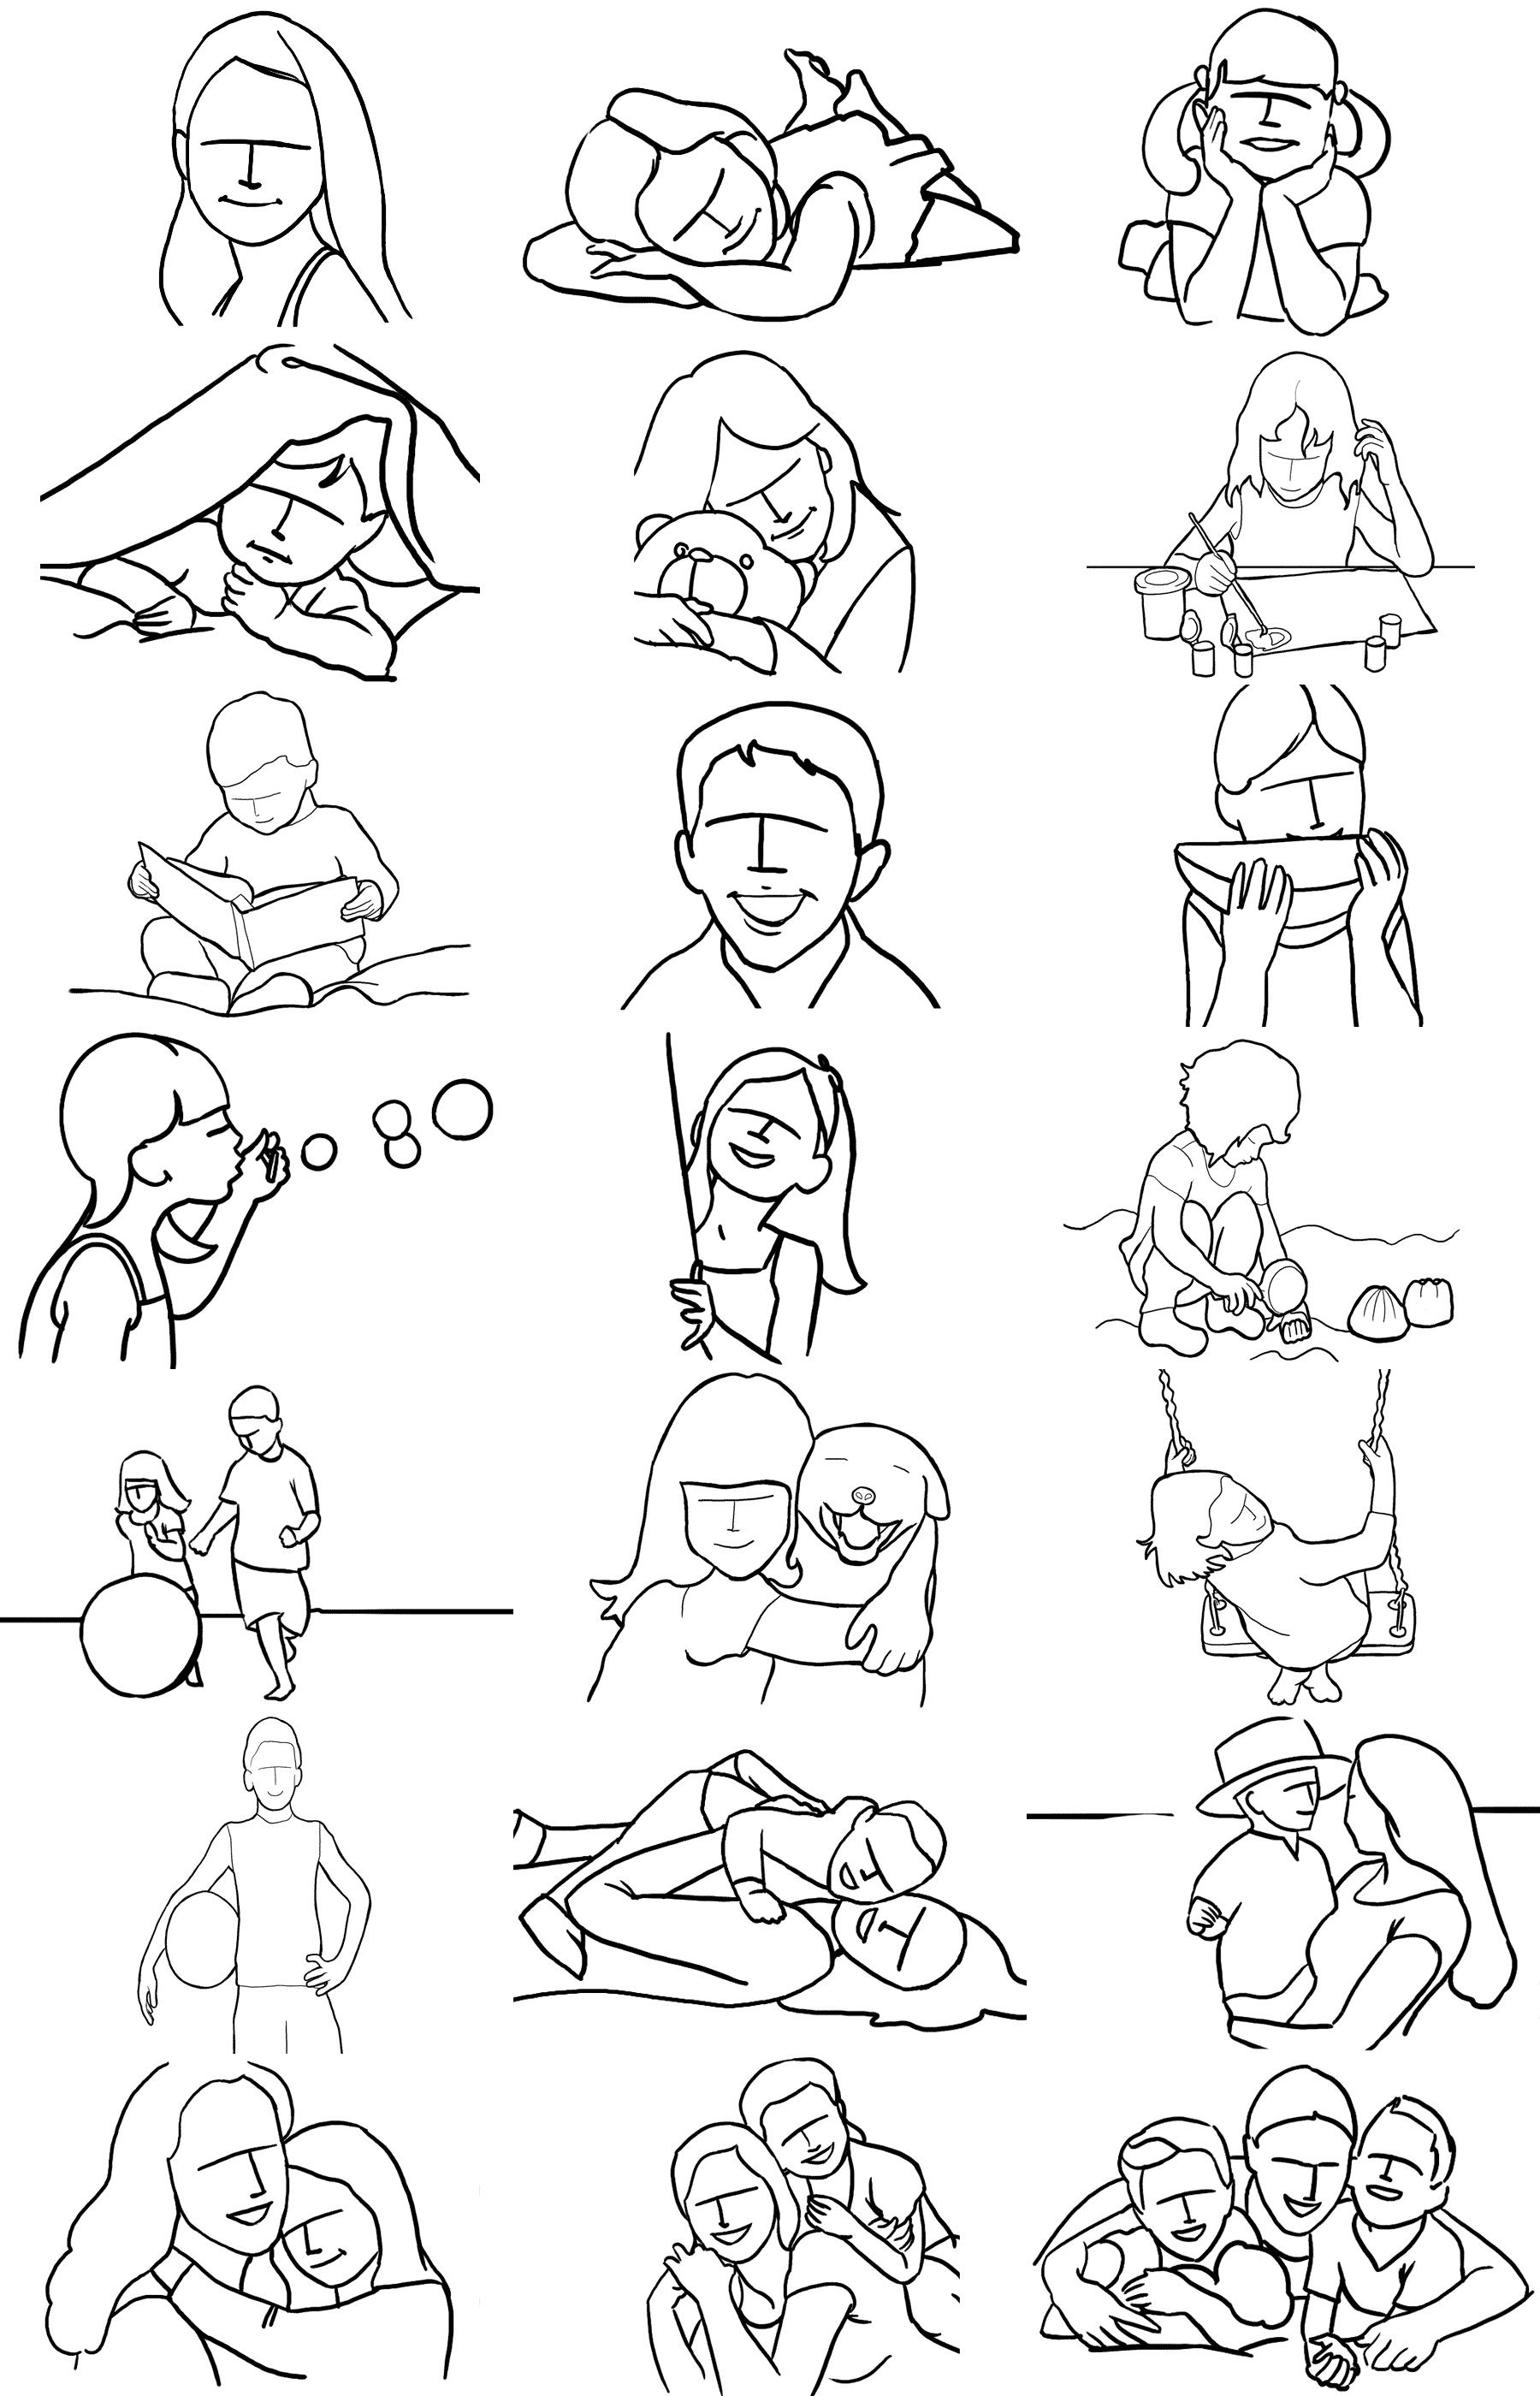 posing guide 21 sample poses to get you started with photographing rh pinterest com posing guide children's portrait photography Model Poses